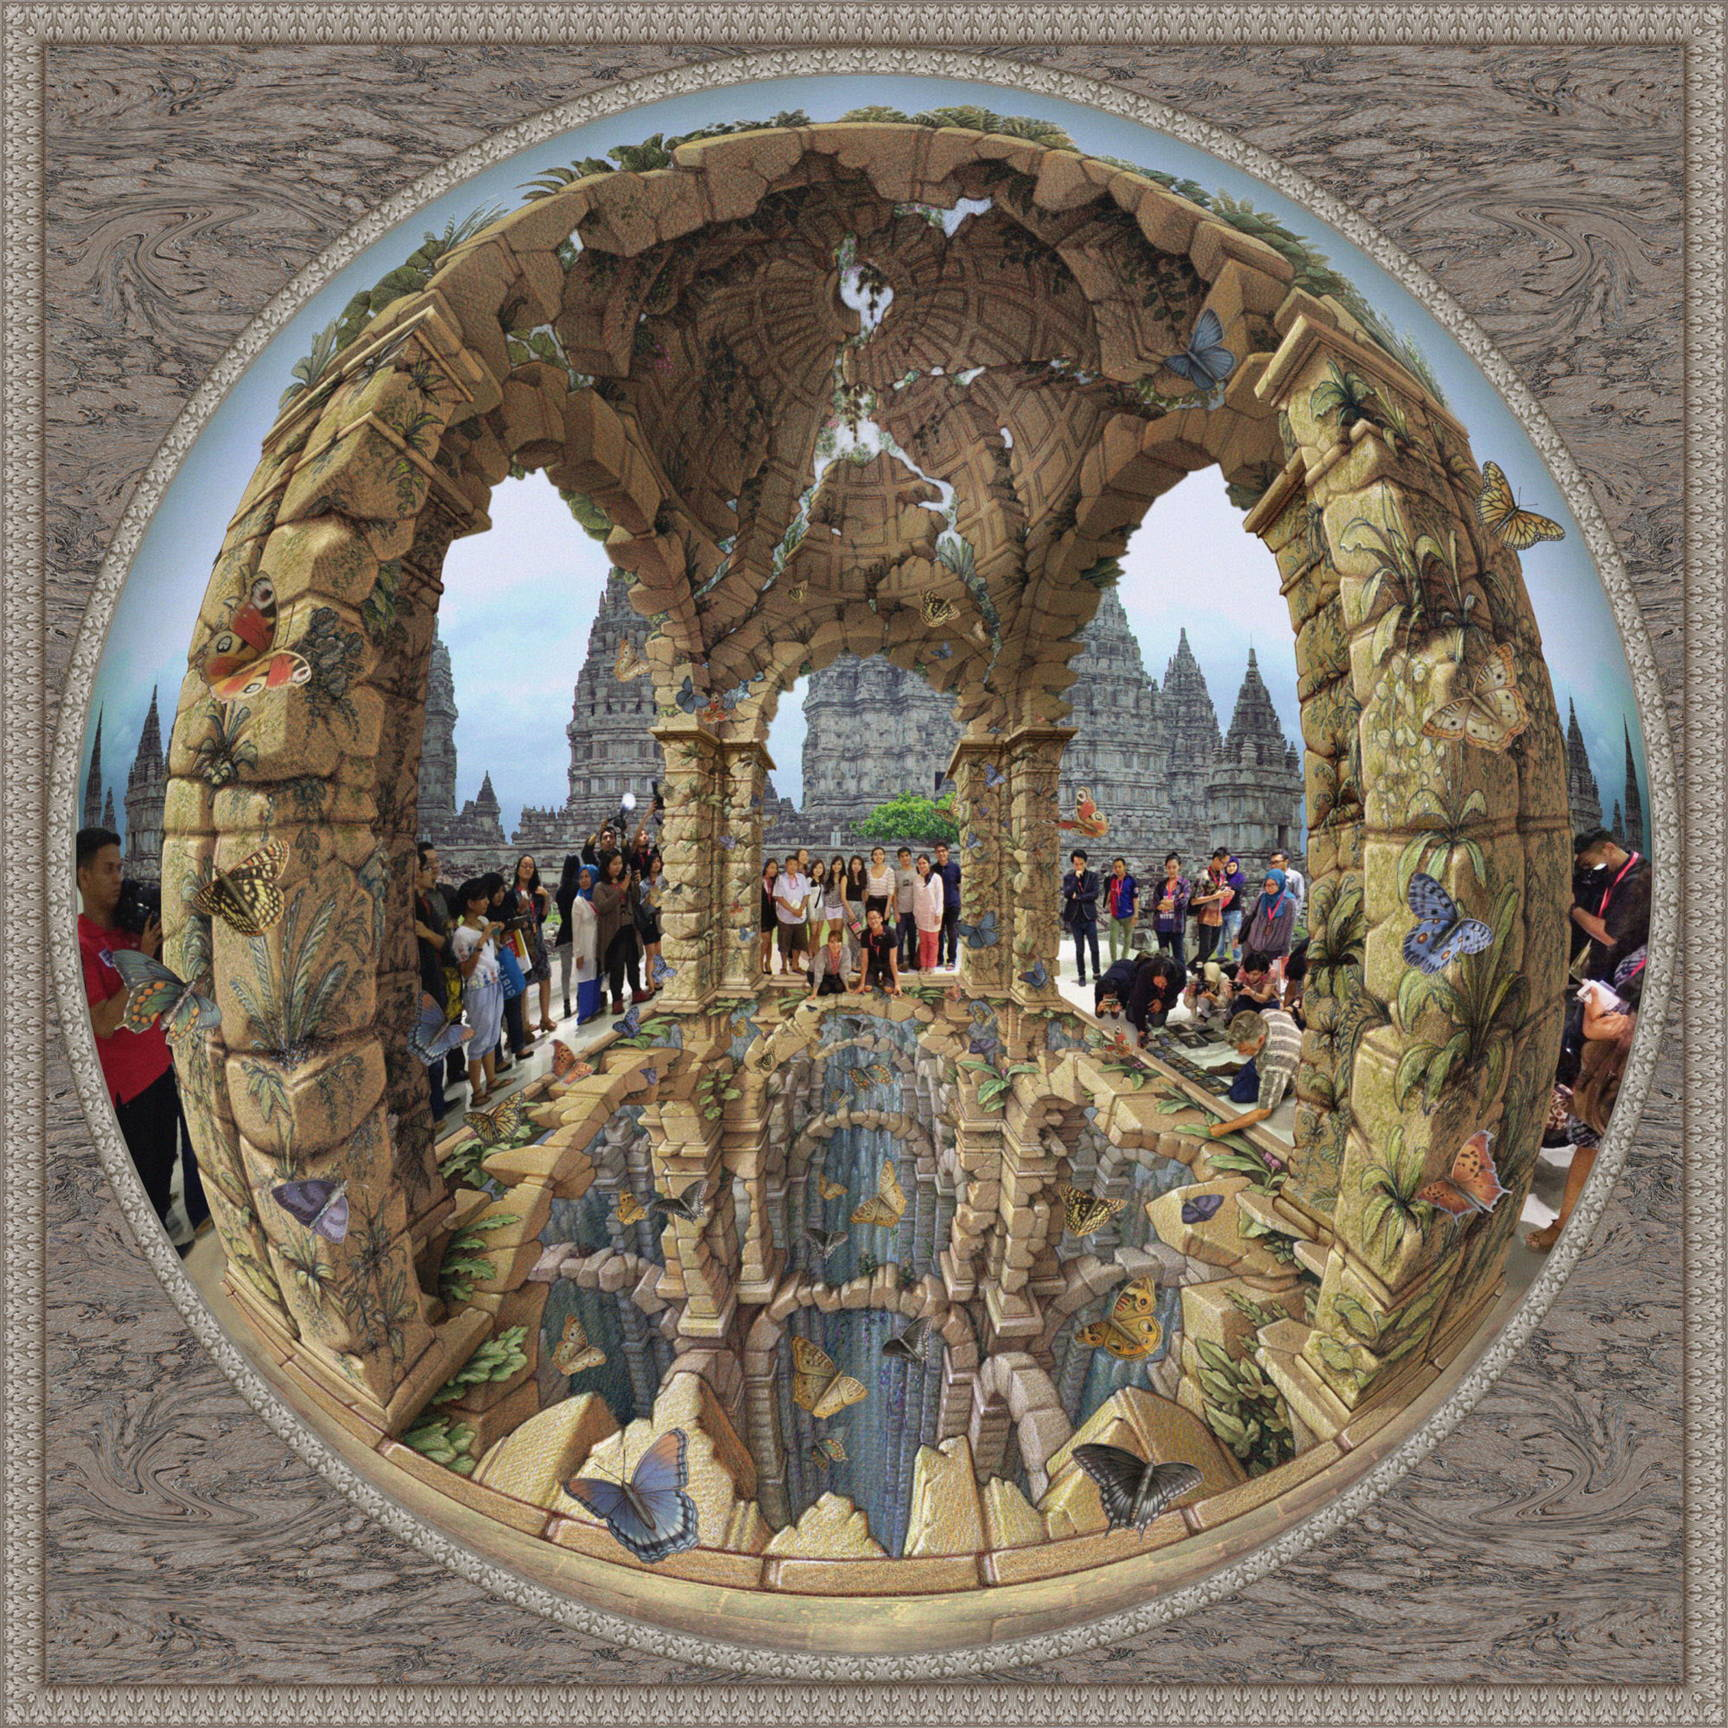 Kurt Wenner Museum of Wonders 3D illusion 3d art